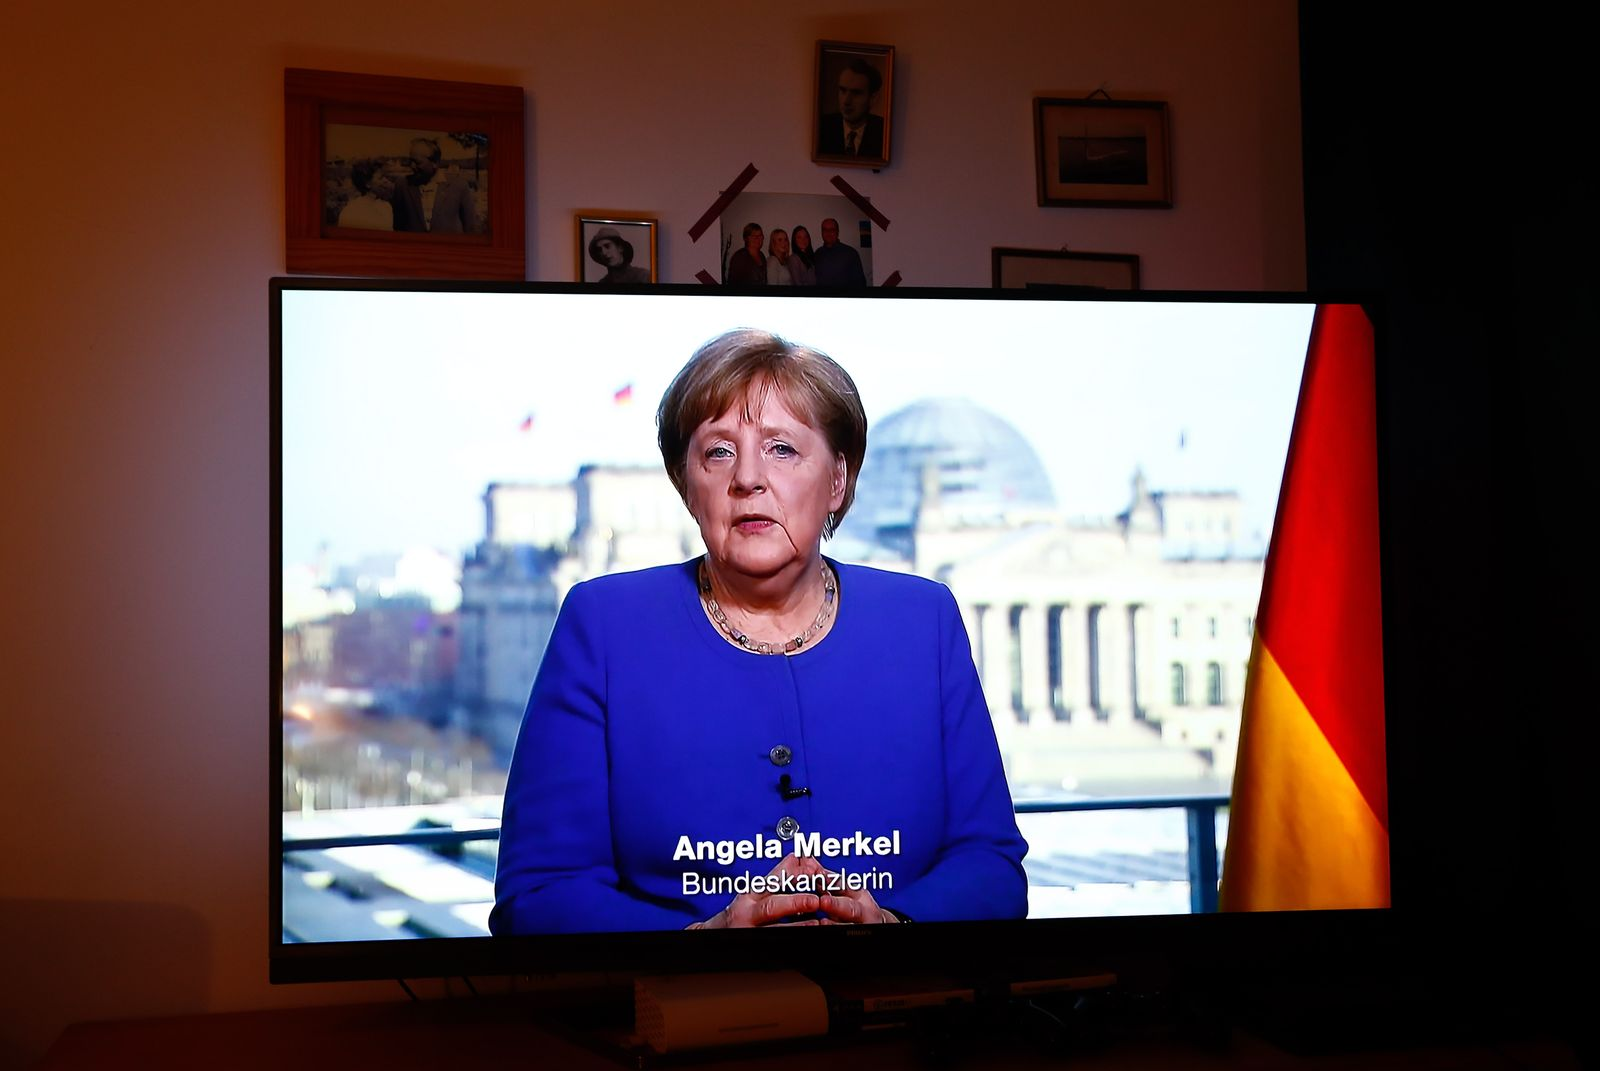 Family Bruhn watches German Chancellor Angela Merkel on television in Berlin